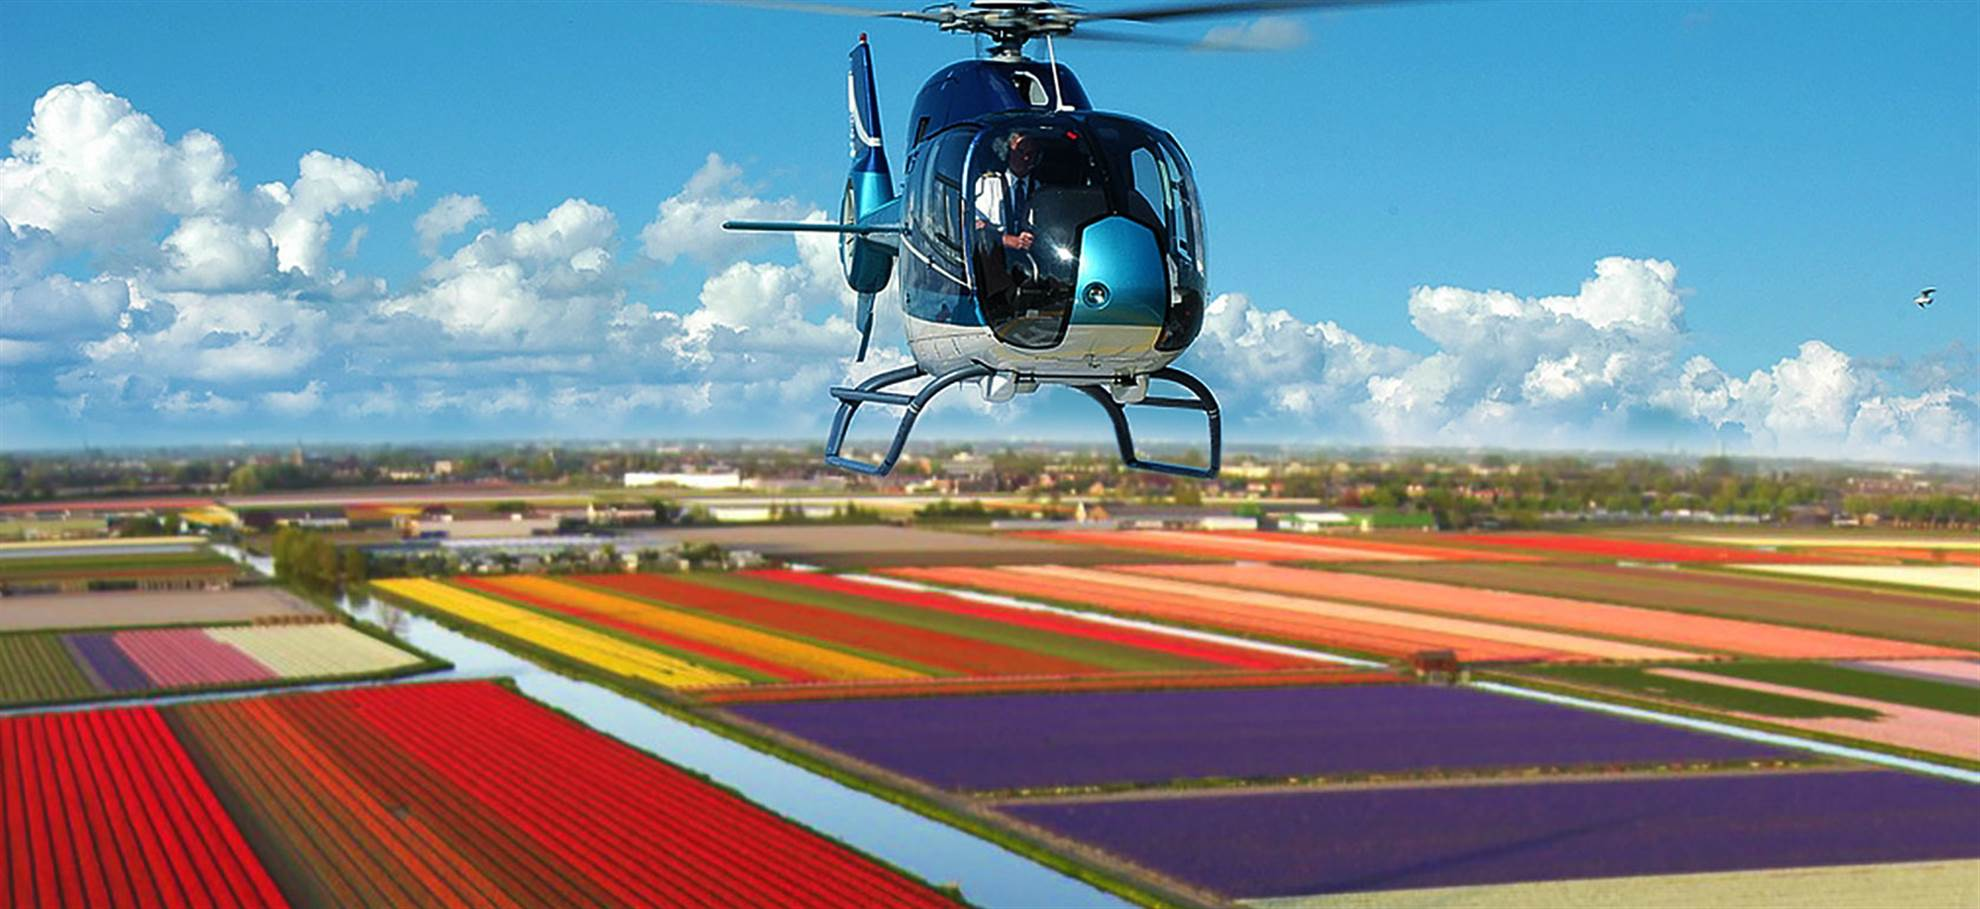 Keukenhof Helicopter Flight 2020 (Active & Bookable)